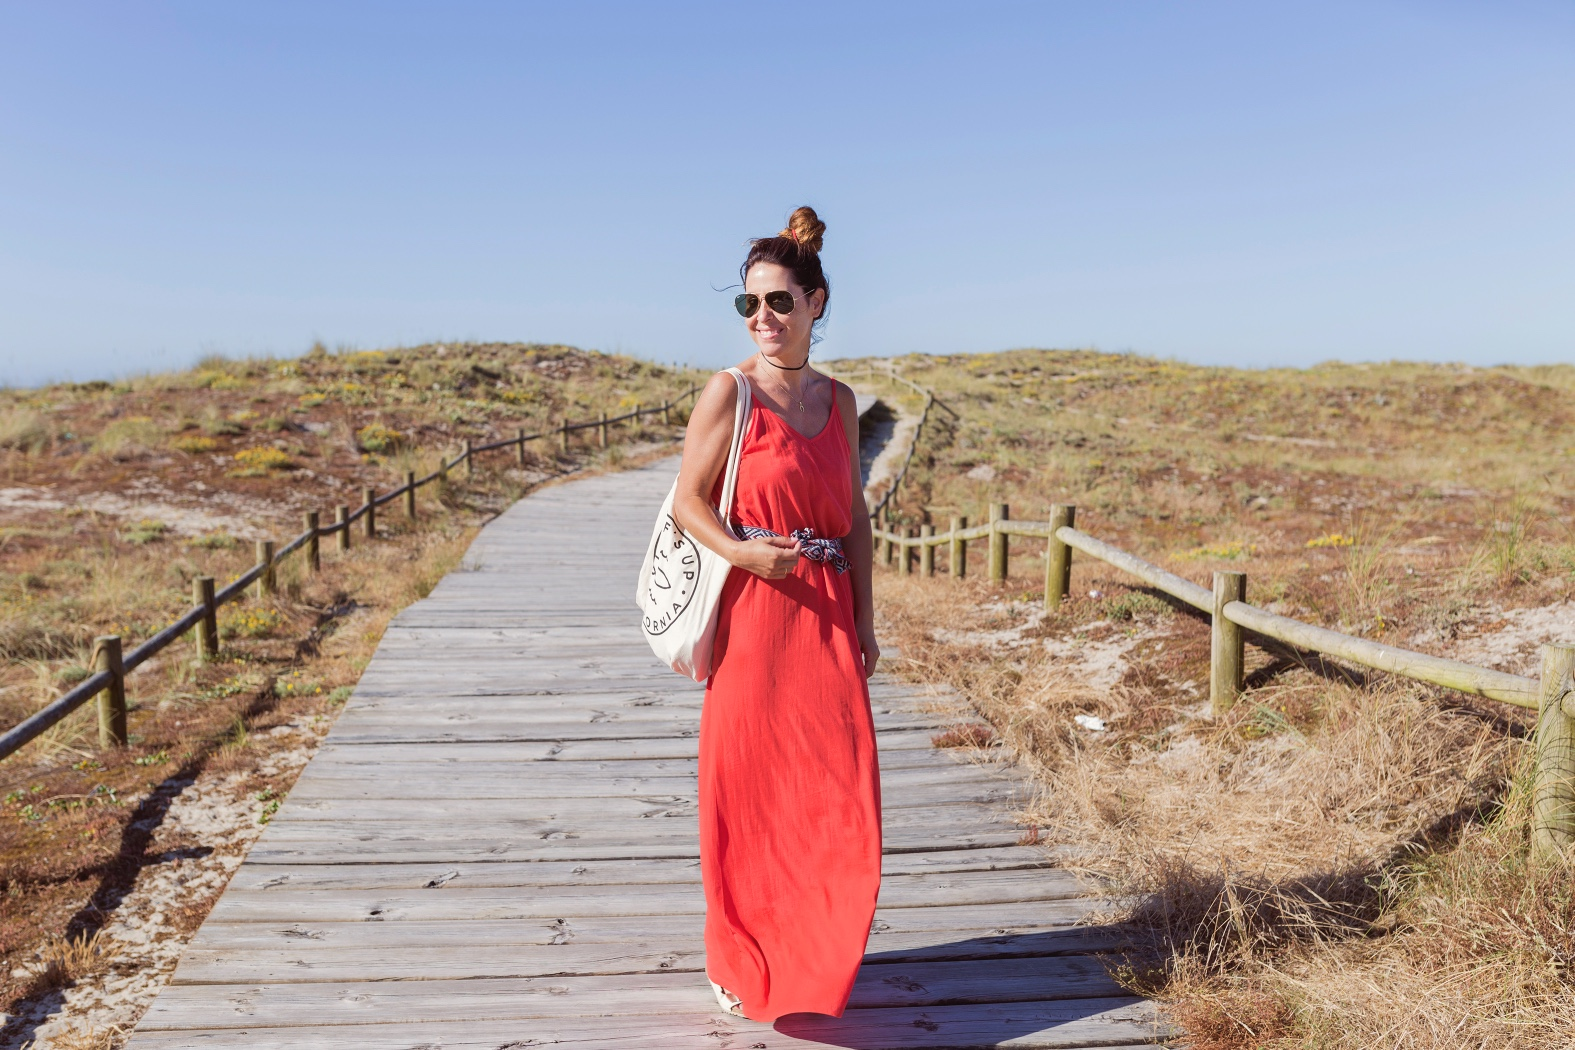 blogger-fashion-barrañán -coruña - descalzaporelparque bolsa tela- playa - pull and bear - rayban -rojo -summer - zara-costa da morte Club -surf-playa-barrañan-arteixo